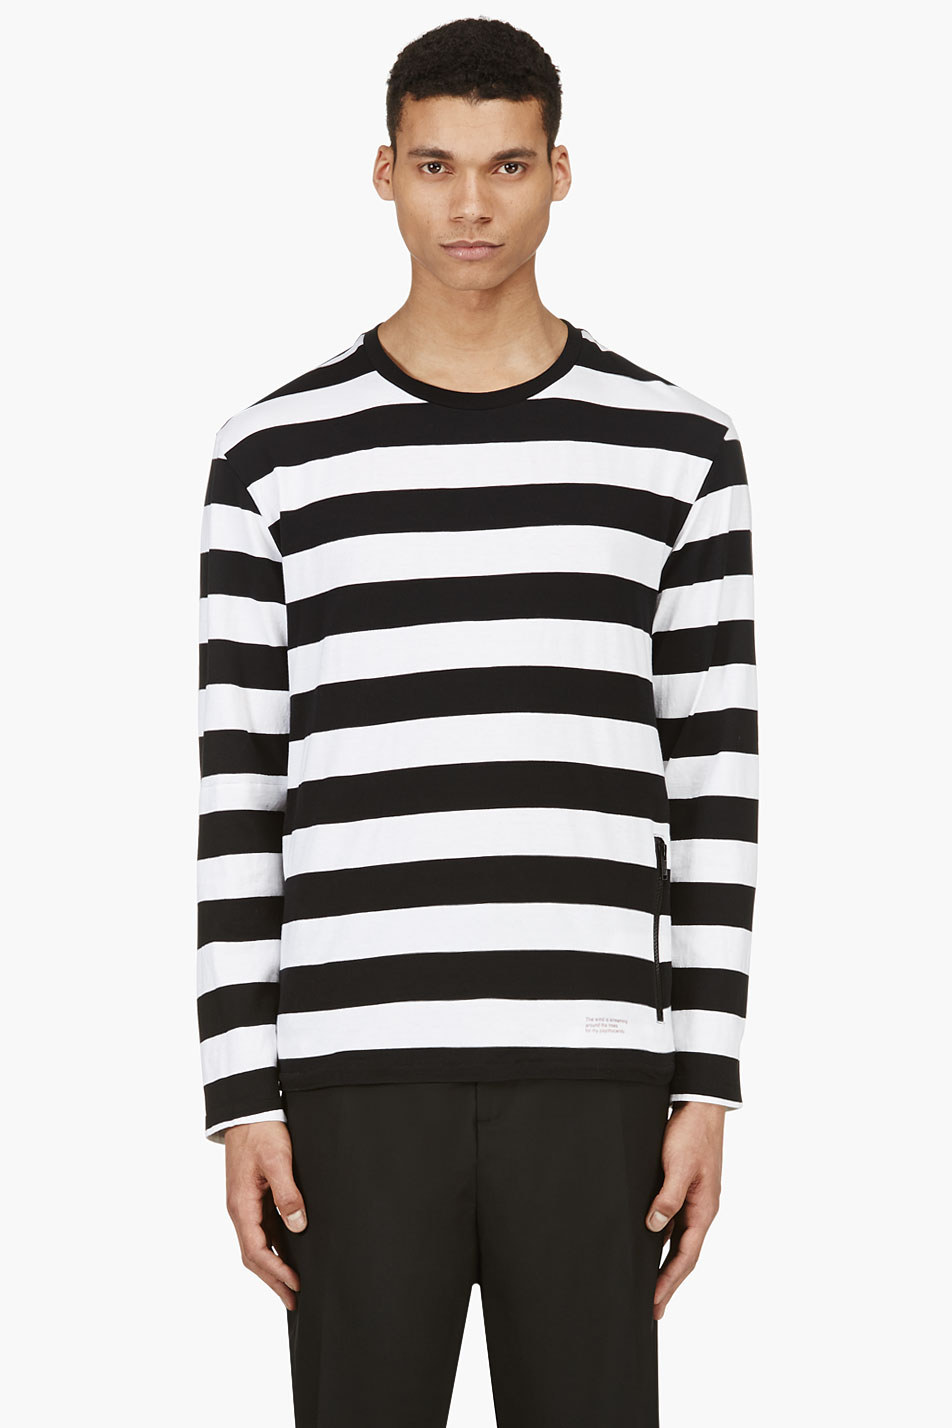 Undercover Black And White Stripe Long Sleeve T Shirt In